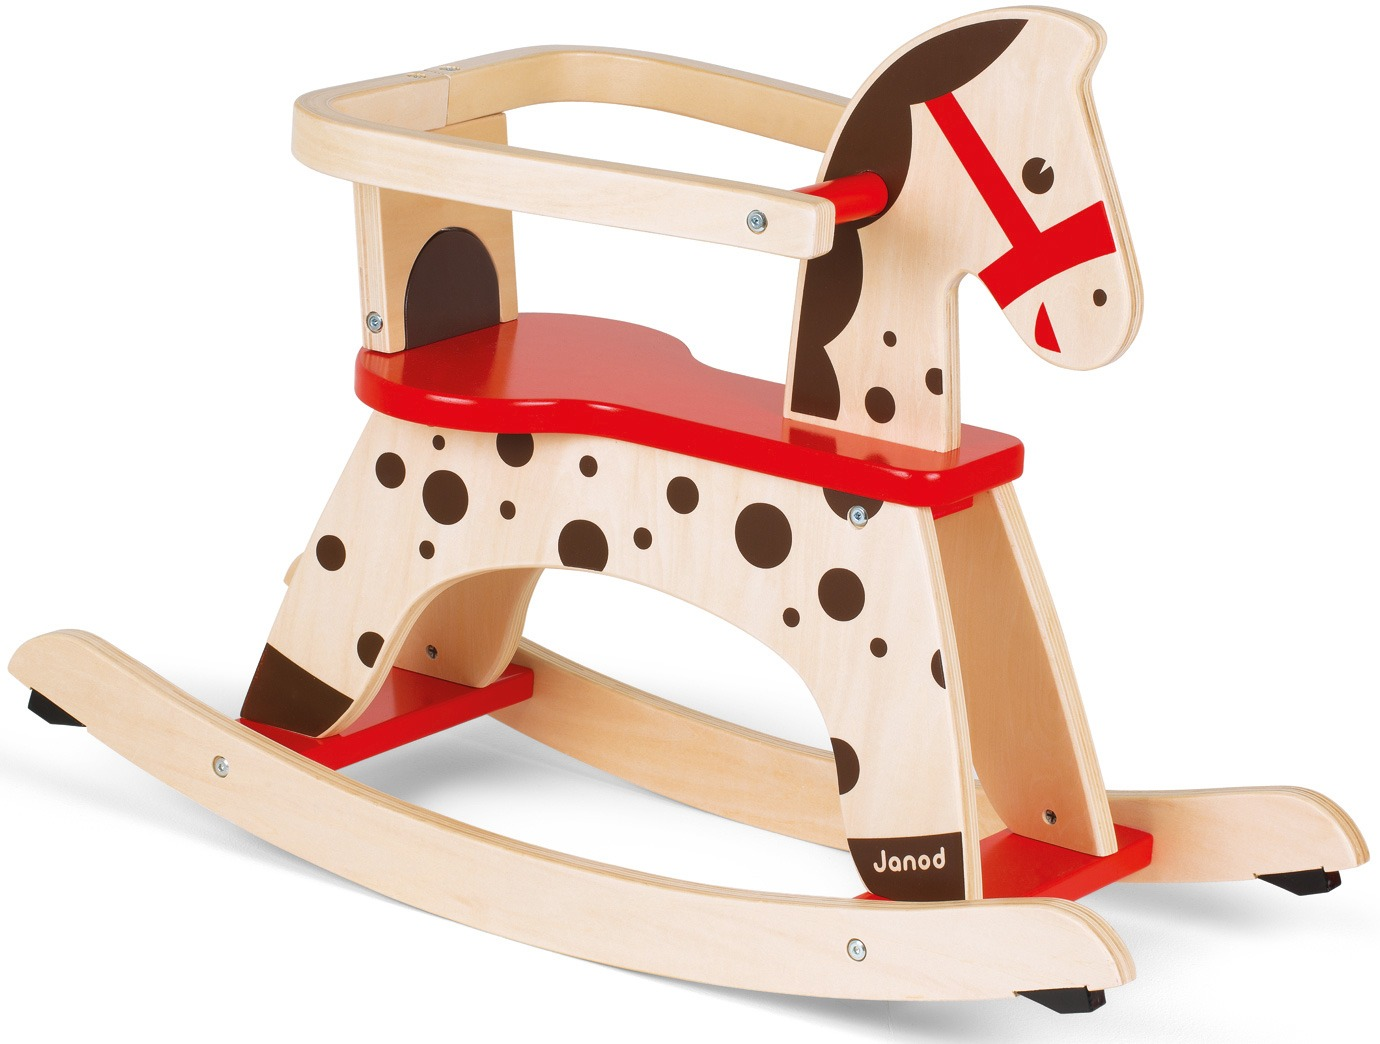 janod french rocking horse childkids wooden activity toy bnib -